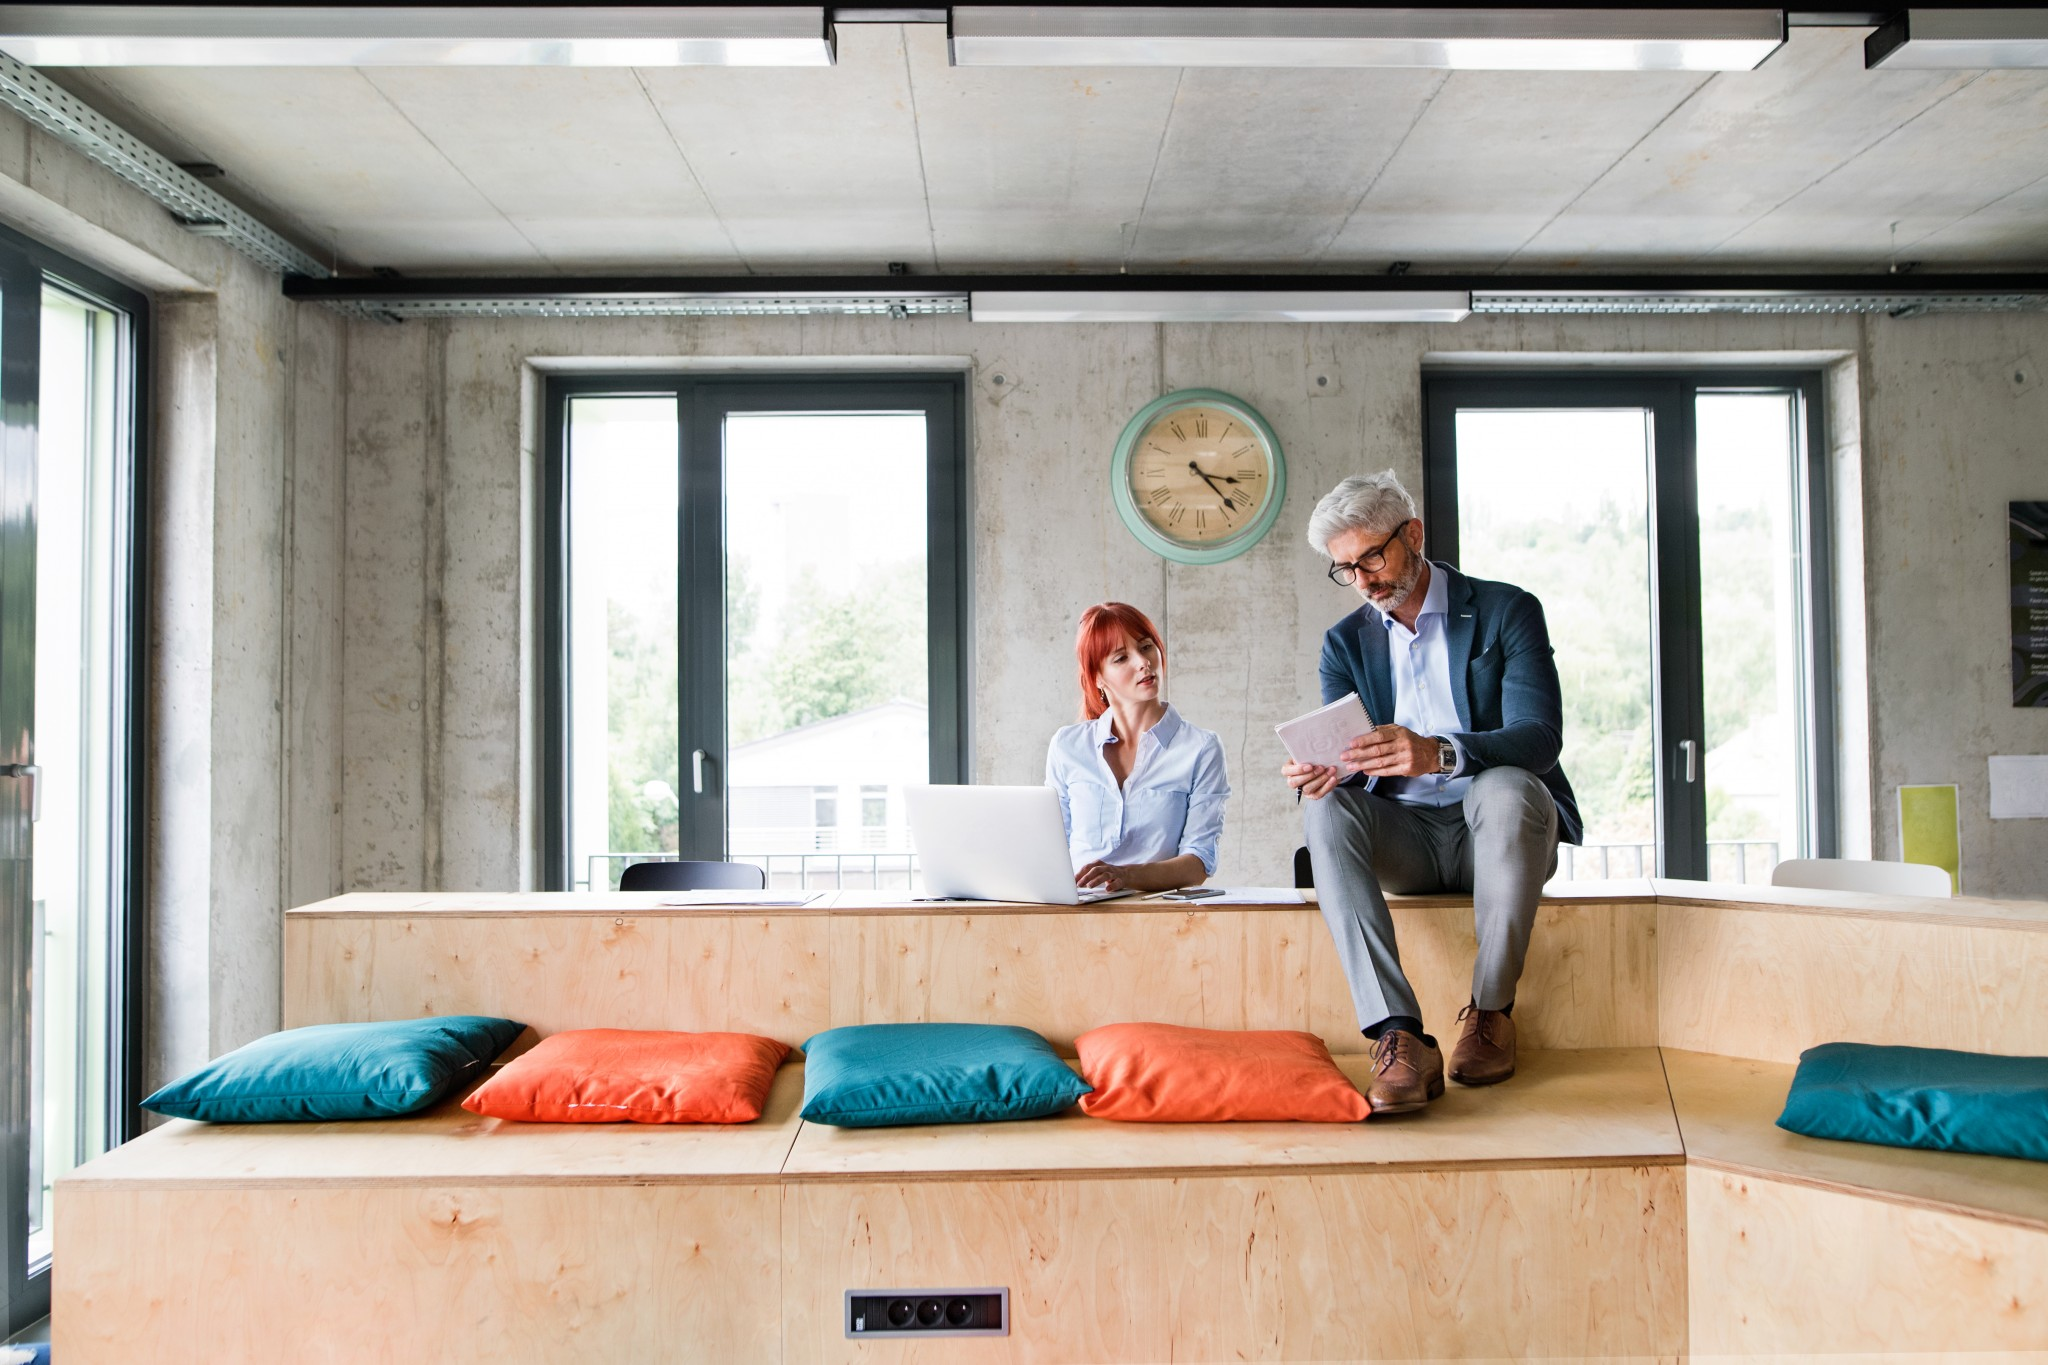 Two business people in workplace. Woman and man in creative office consulting a project together.